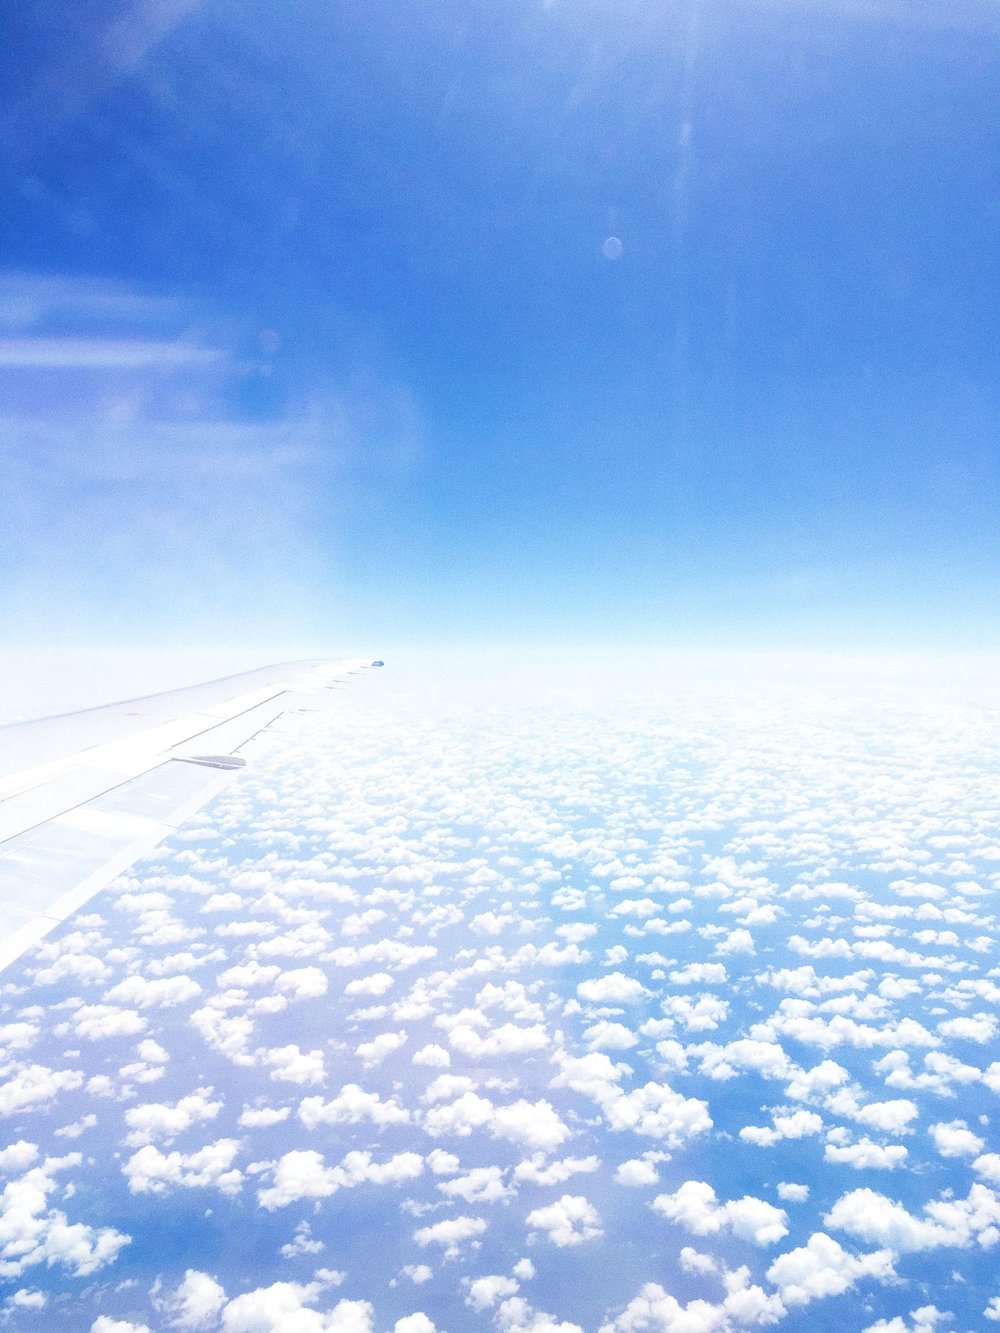 07 / Up in the air